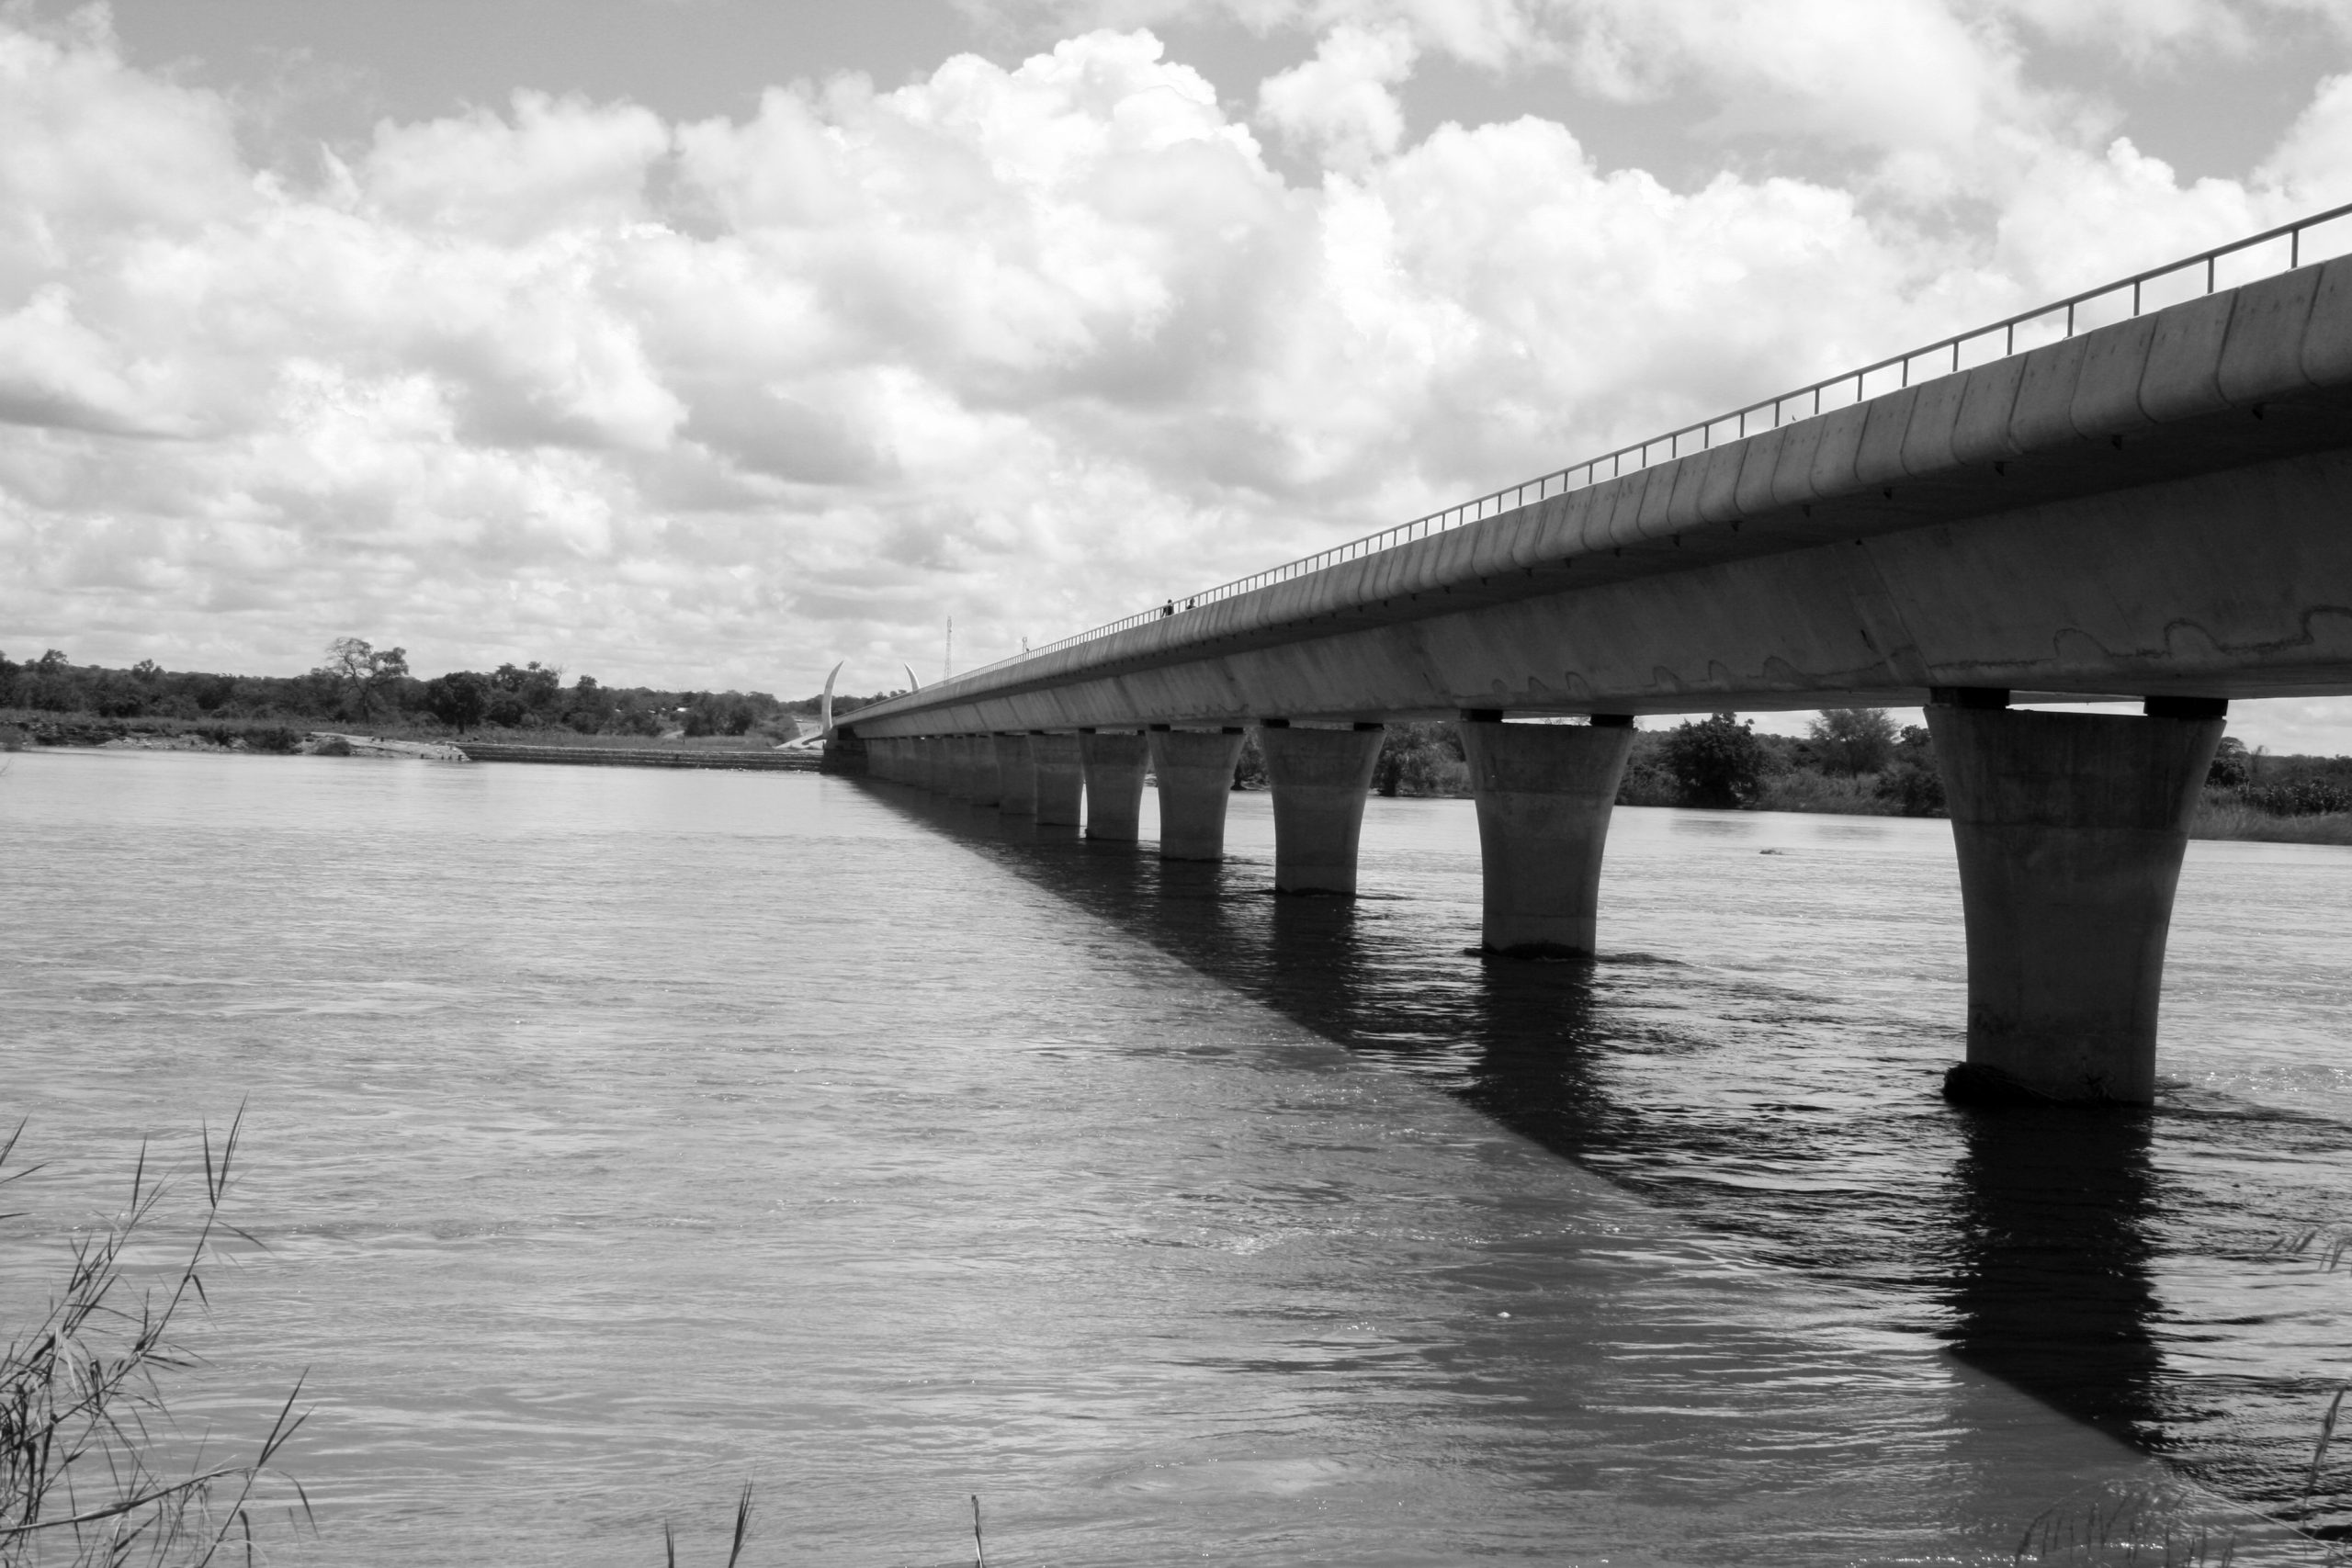 Bridge on Ruvuma river - view from the Mozambique side